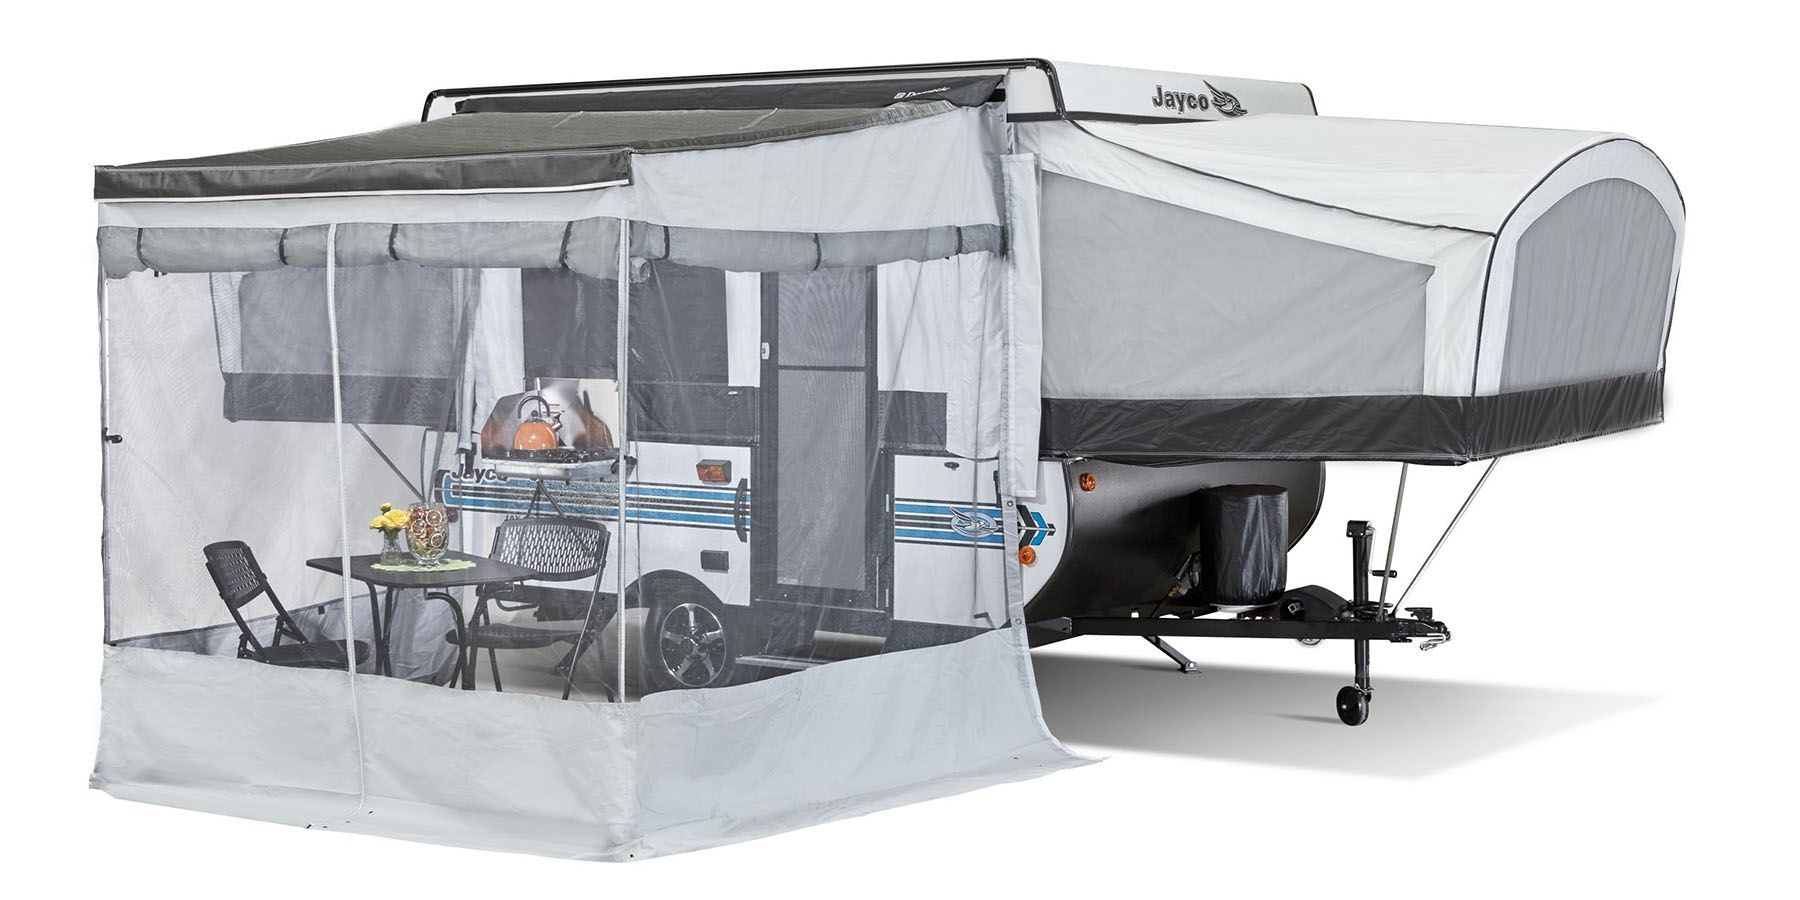 Pop Up Campers - jay sport awning